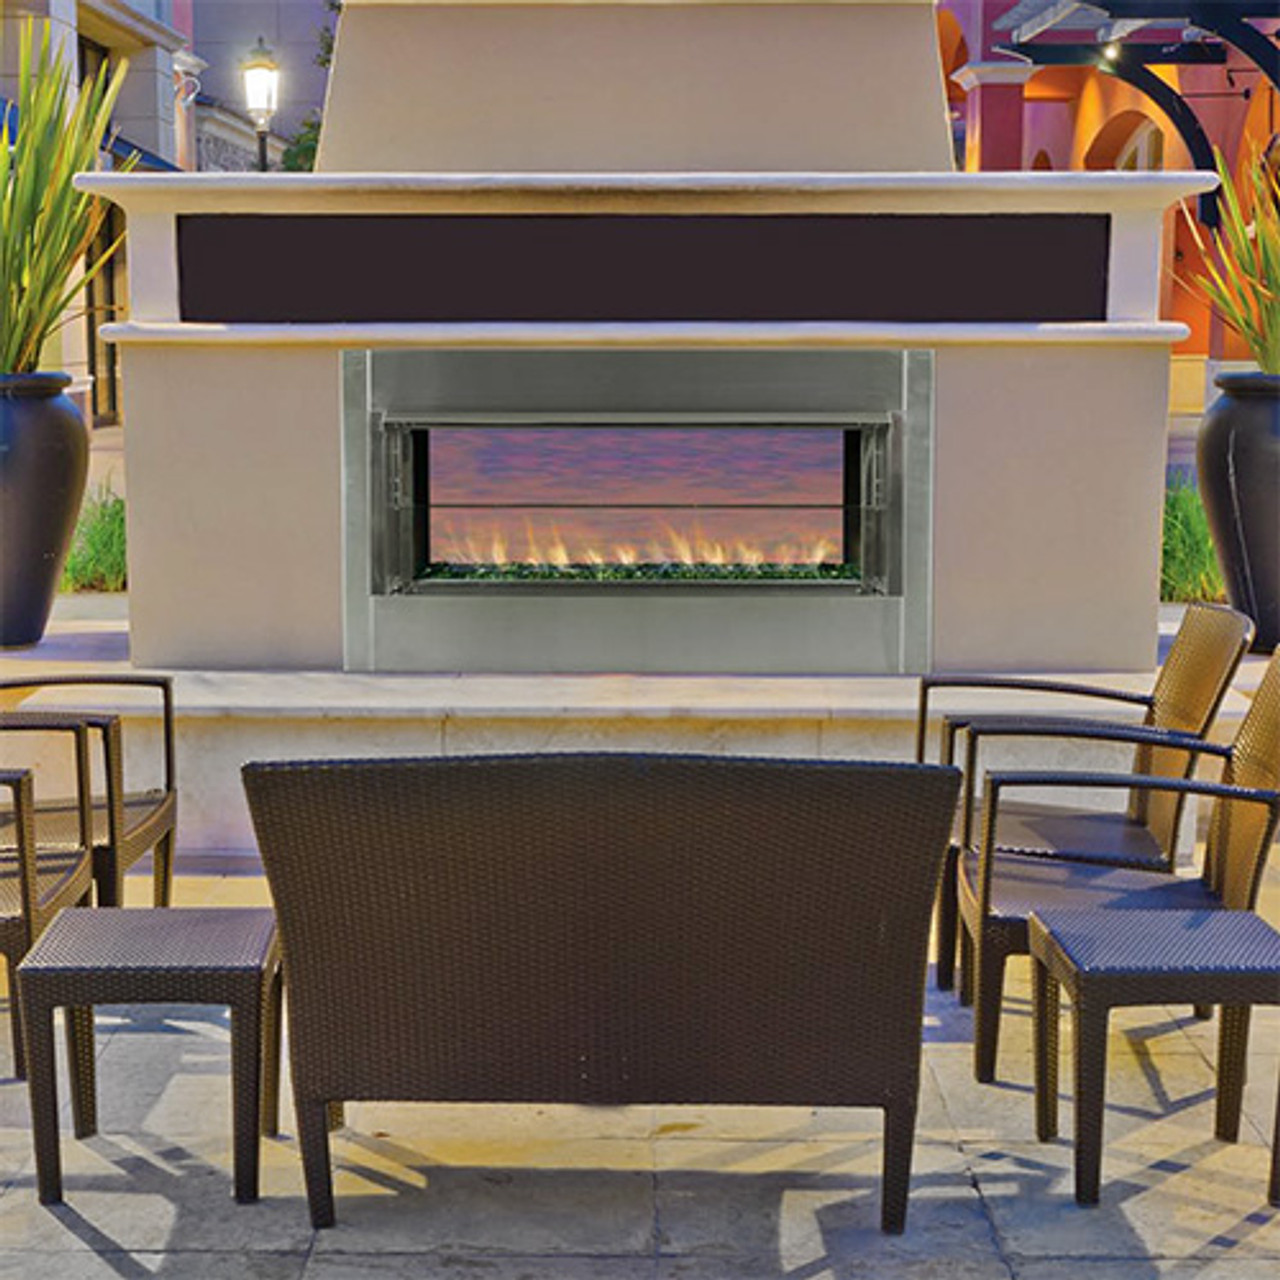 SUPERIOR VRE 4500 LINEAR OUTDOOR GAS FIREPLACE VENT FREE